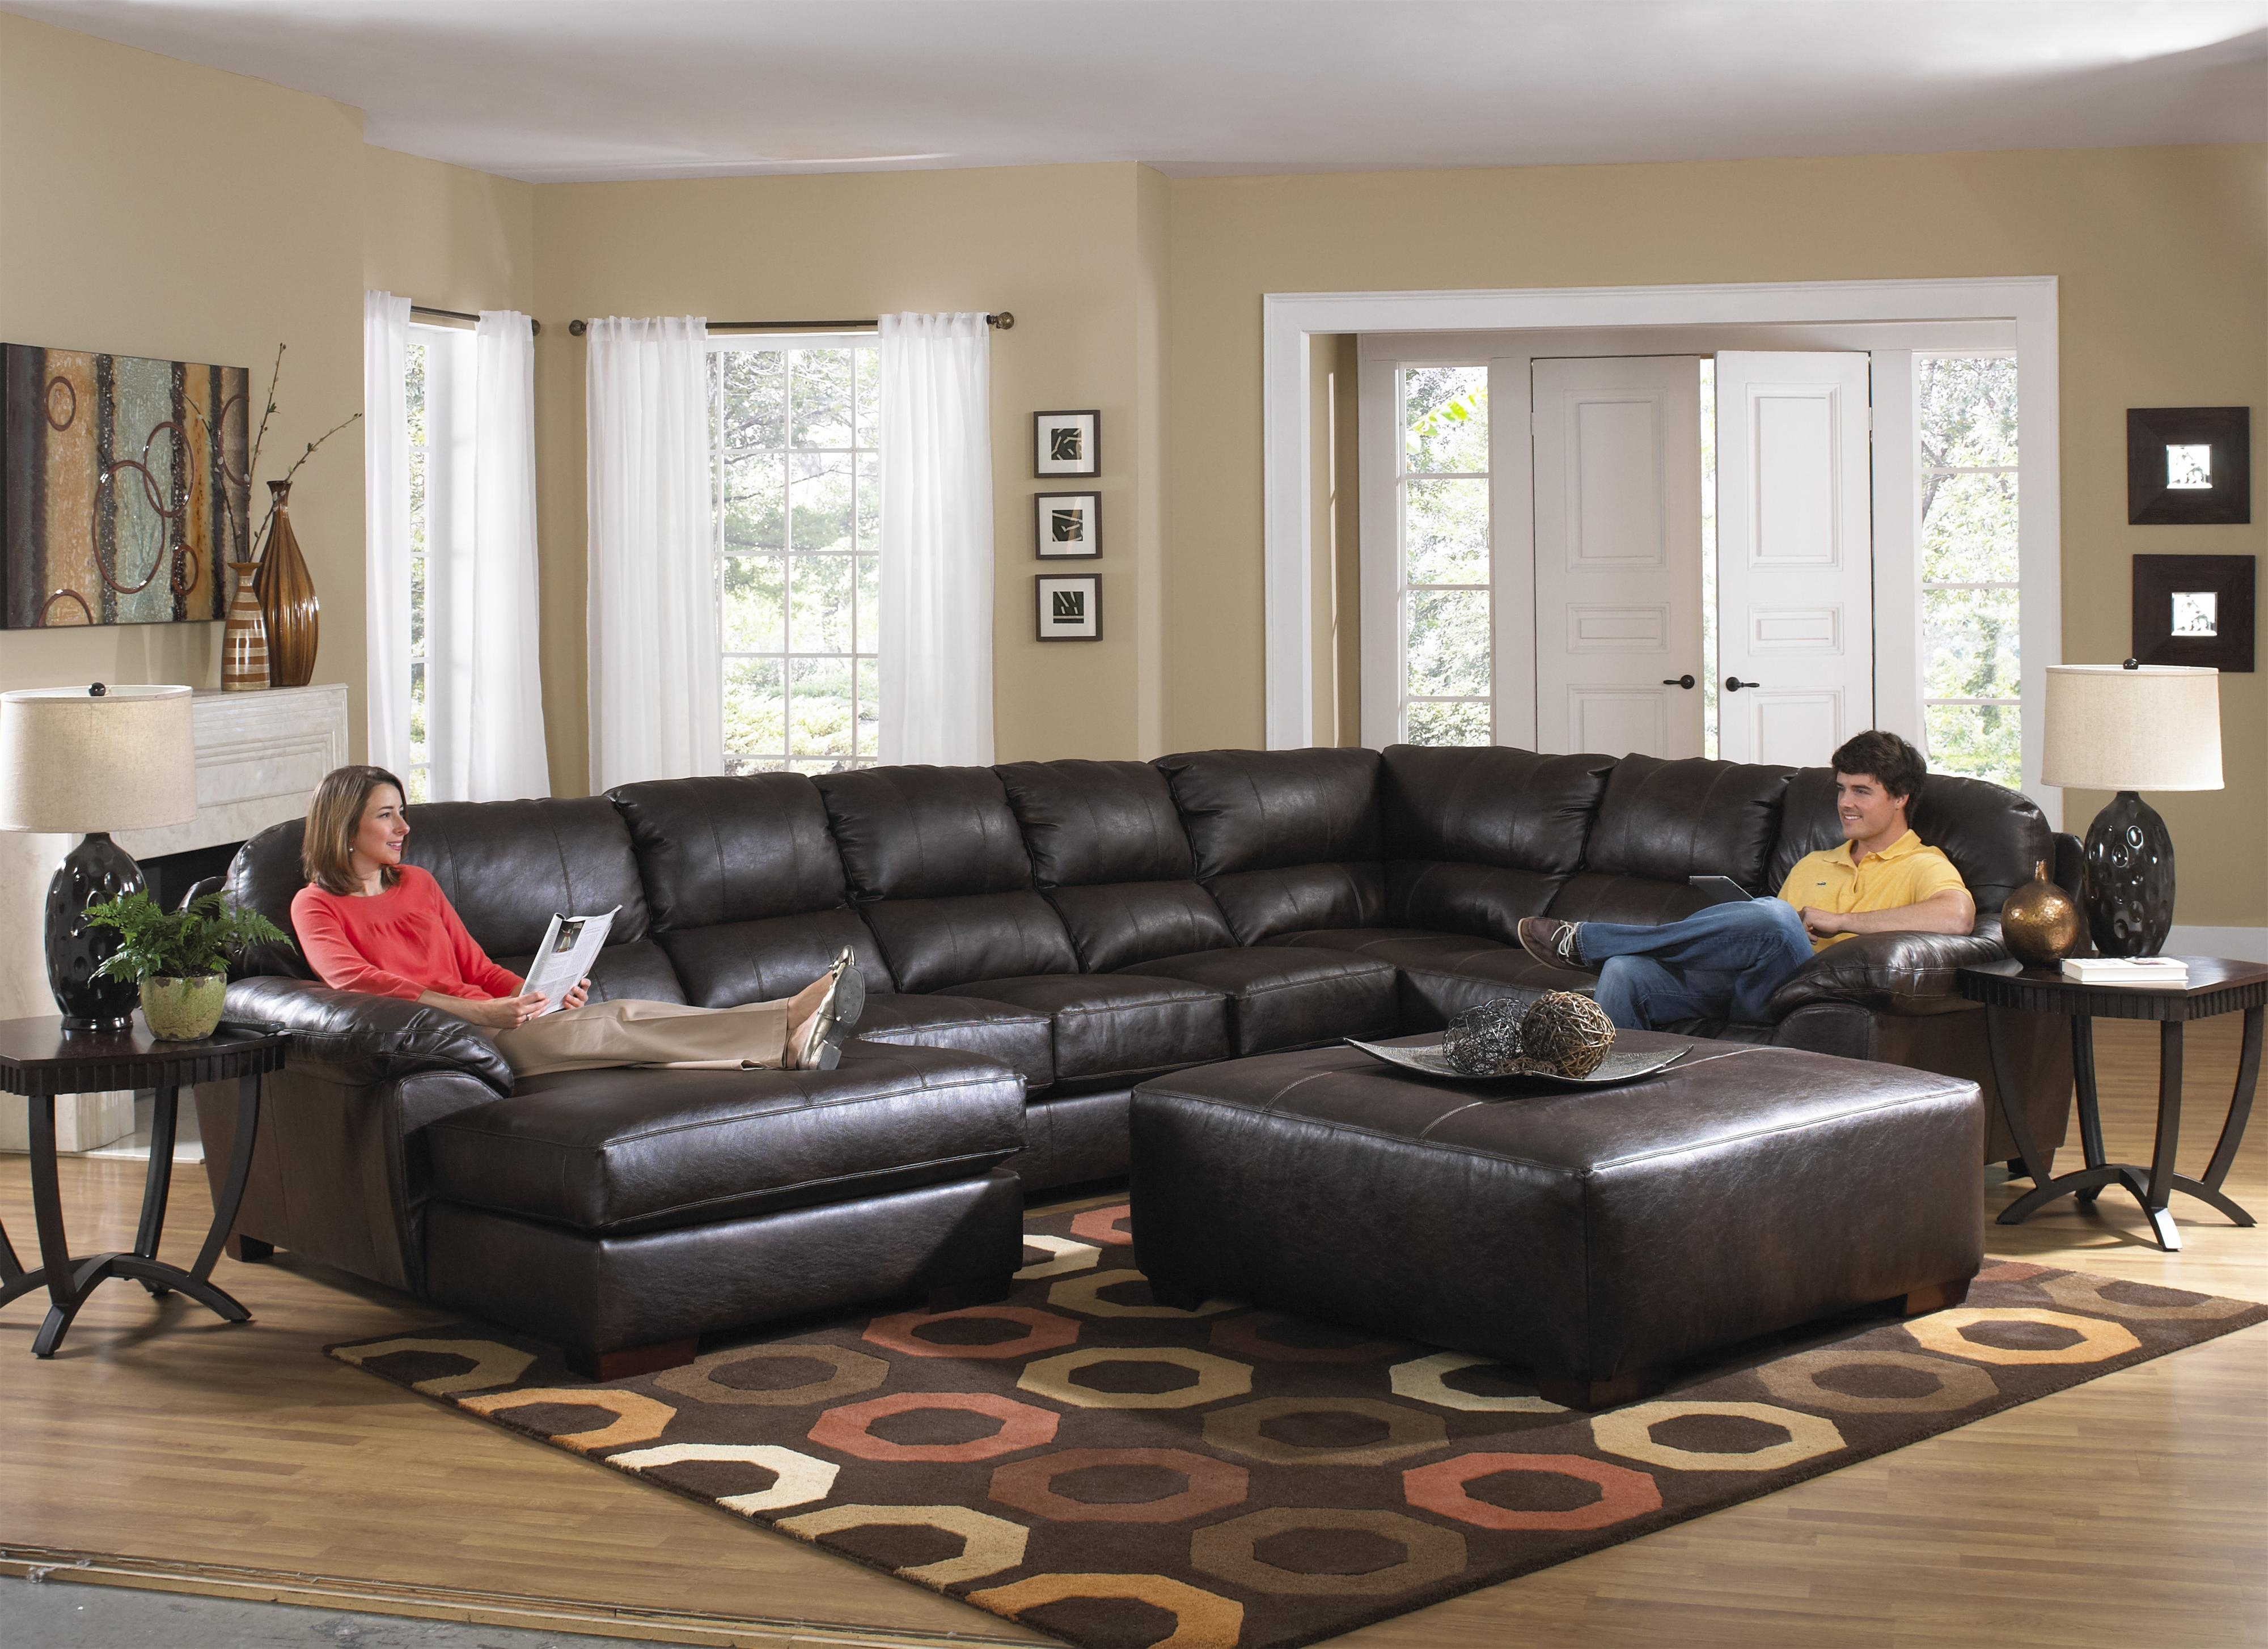 Most Recent Sofas With Large Ottoman With Extra Large Cocktail Ottomanjackson Furniture (View 9 of 15)